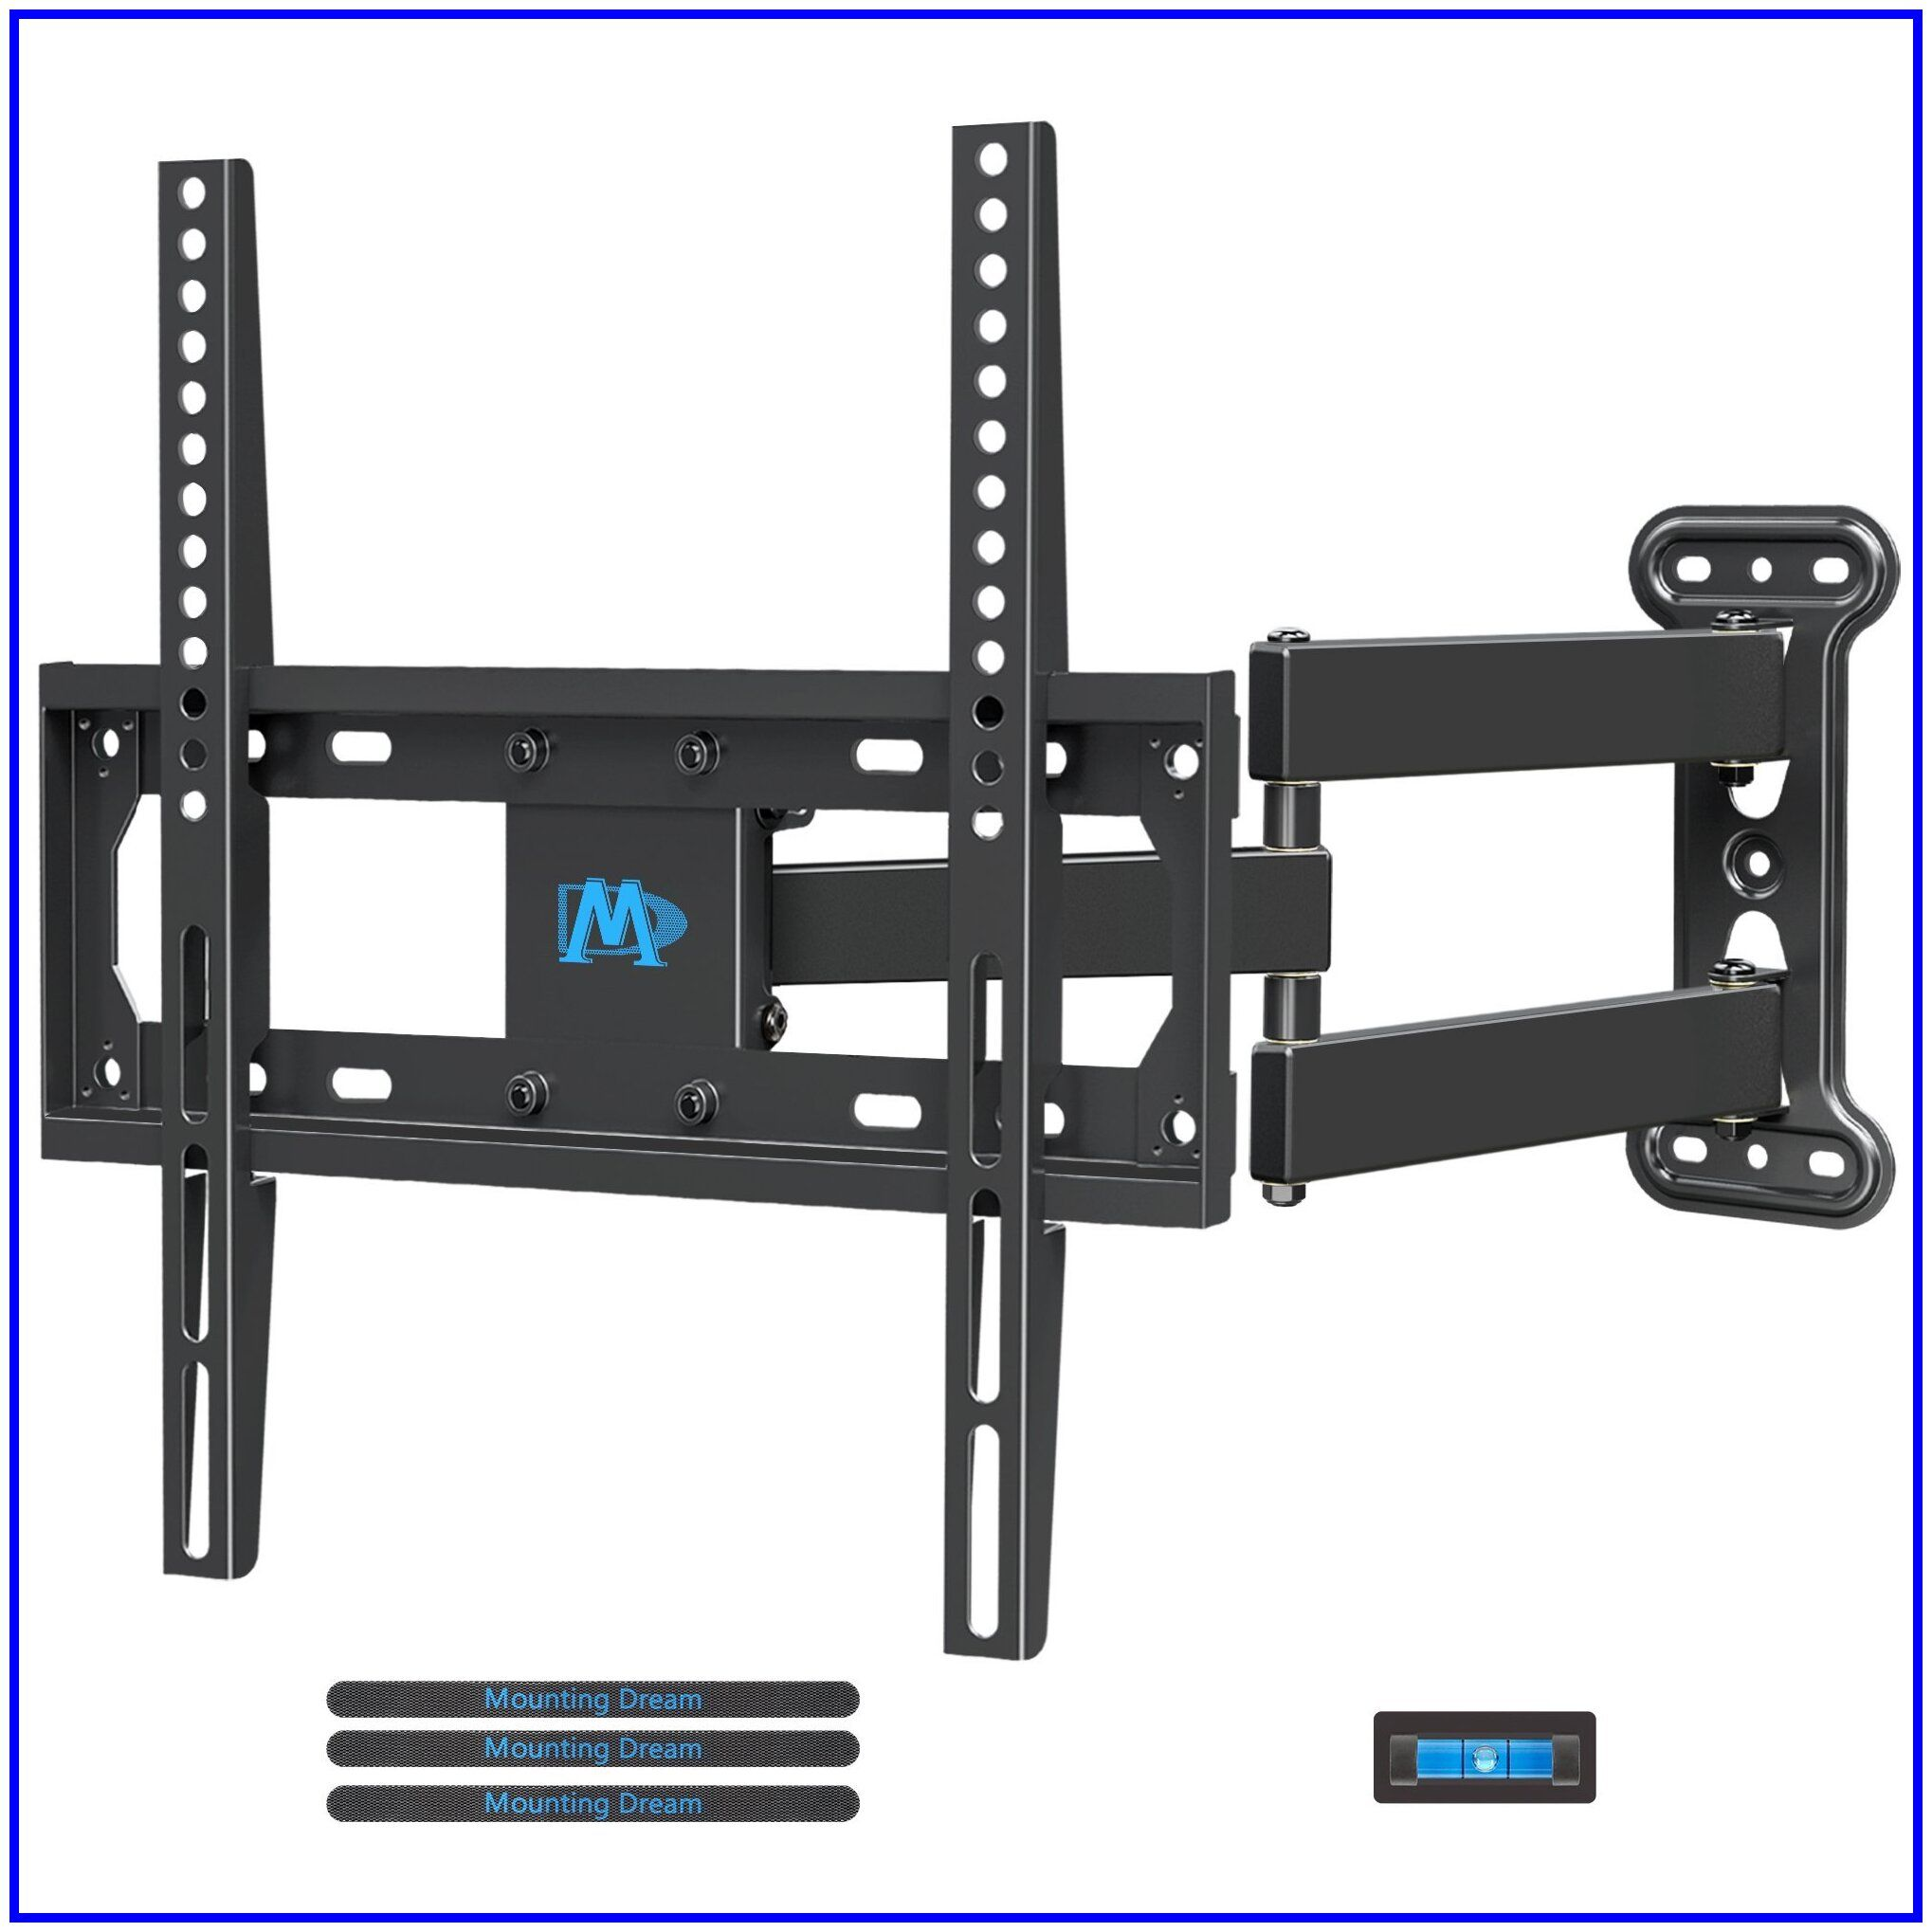 77 Reference Of Led Tv Corner Wall Mount Stand In 2020 Corner Tv Wall Mount Tv Wall Mount Bracket Full Motion Tv Wall Mount